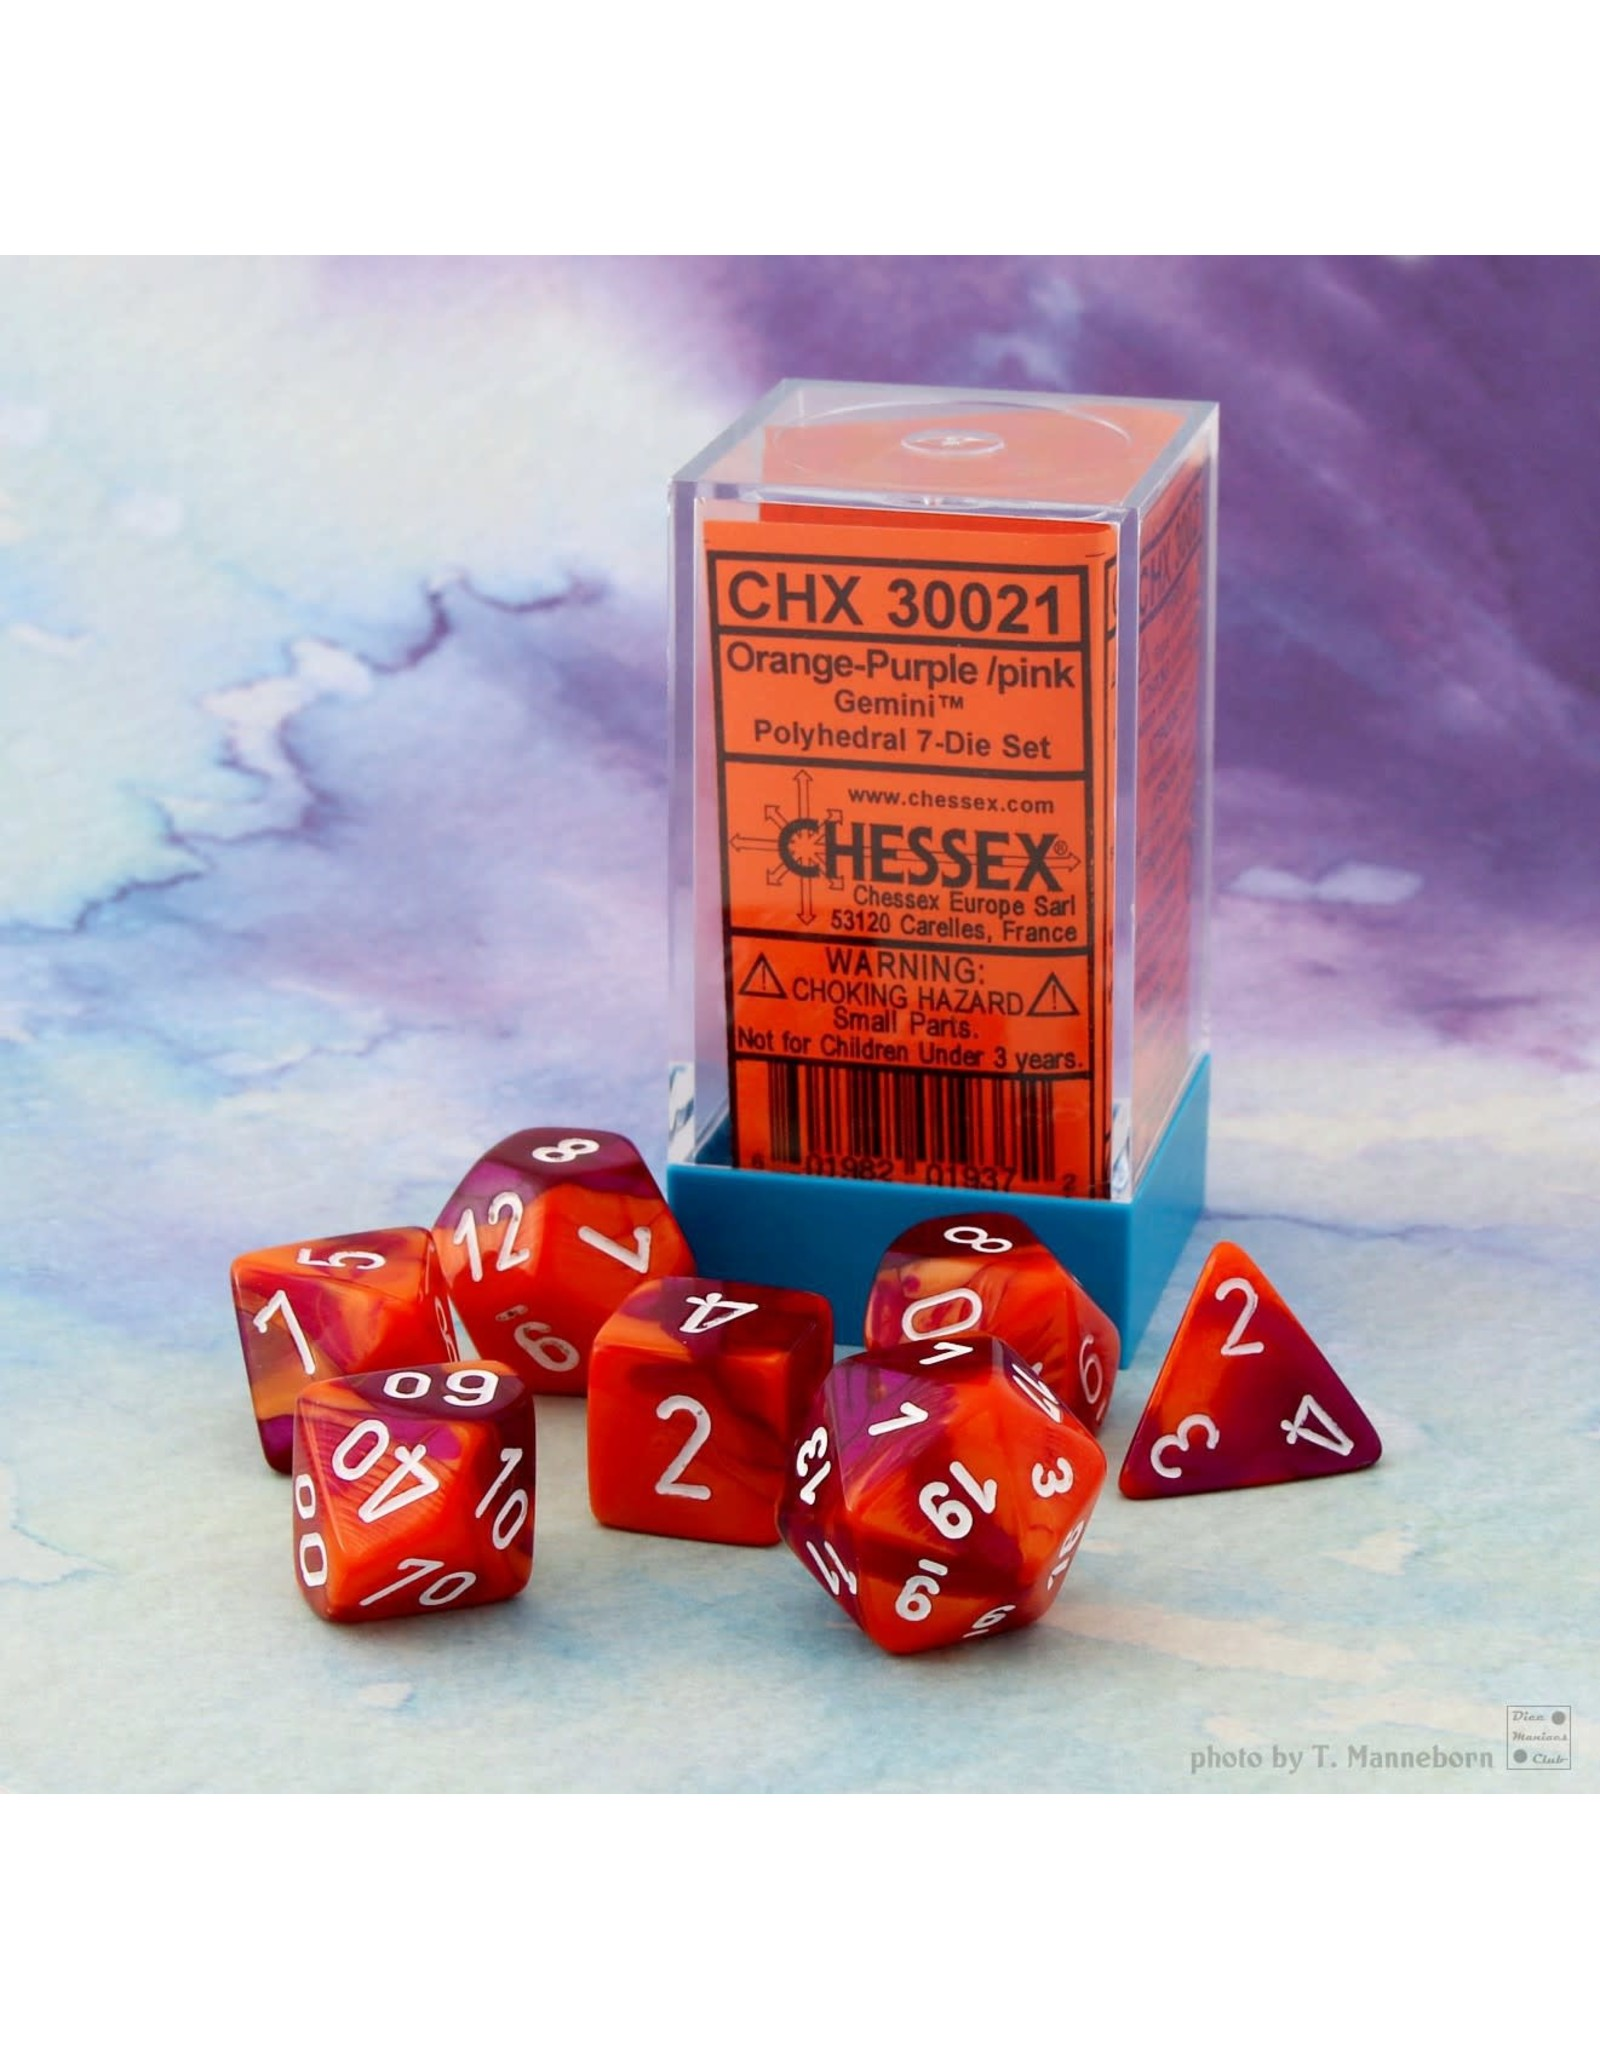 Chessex Gemini Orange-Purple/white Polyhedral 7-Die Set